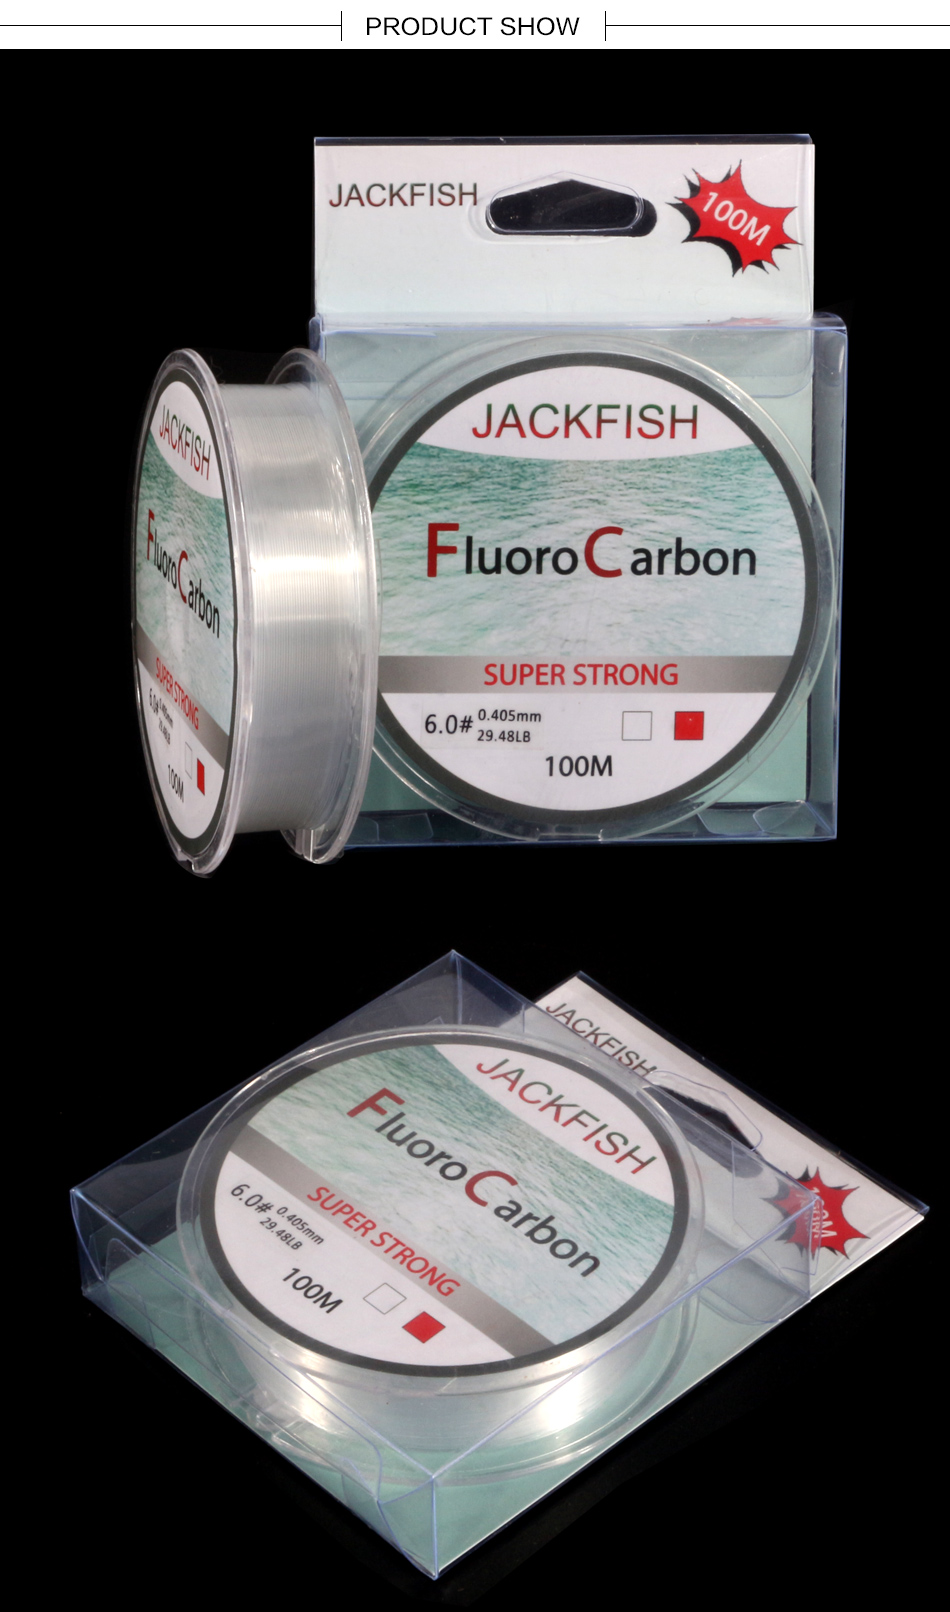 JACKFISH 100M Fluorocarbon fishing line 5-30LB Super strong brand Leader Line clear fly fishing line pesca 9